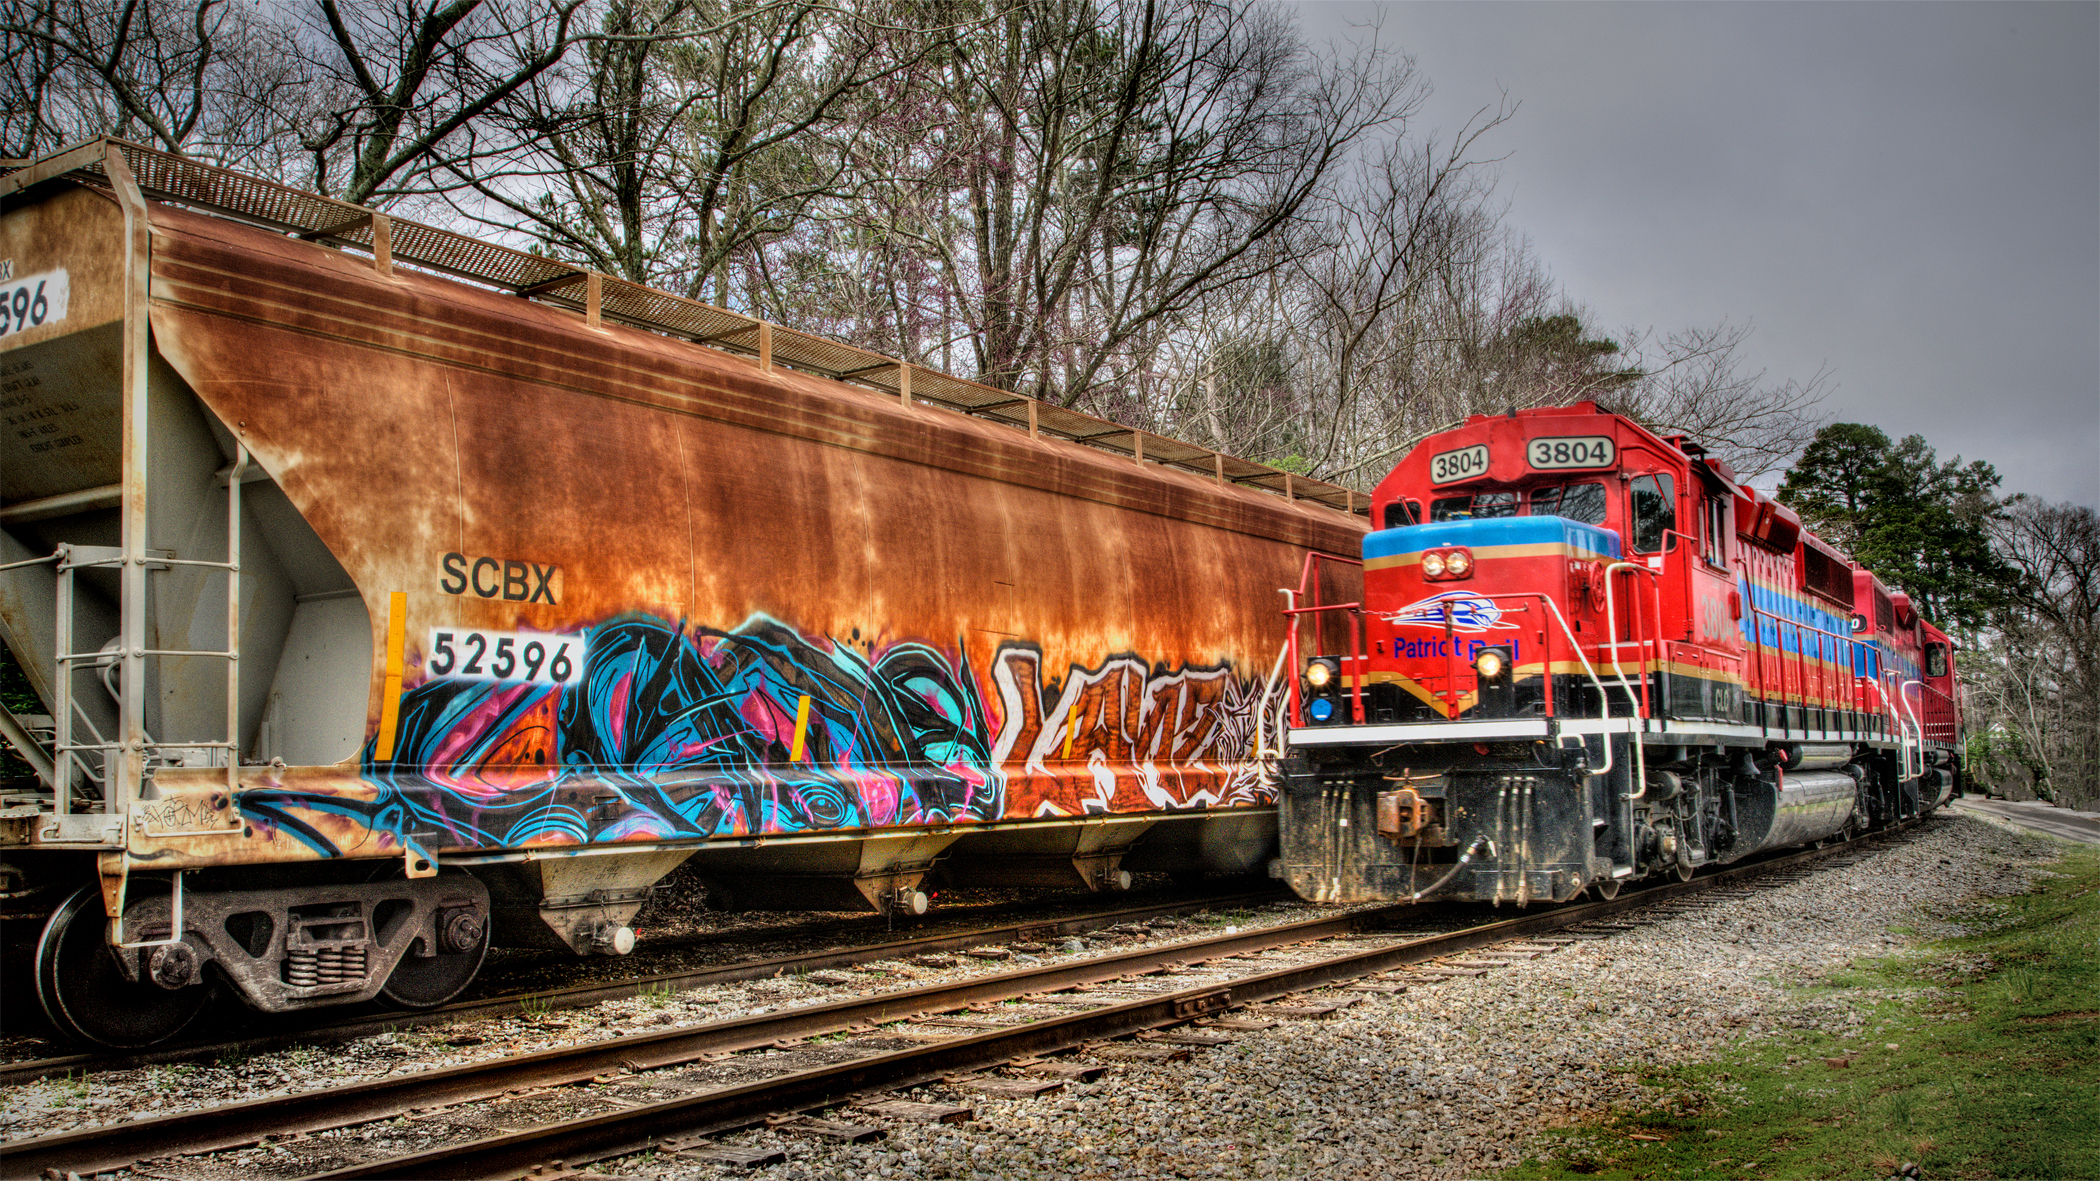 GA Northeastern RR - Graffiti